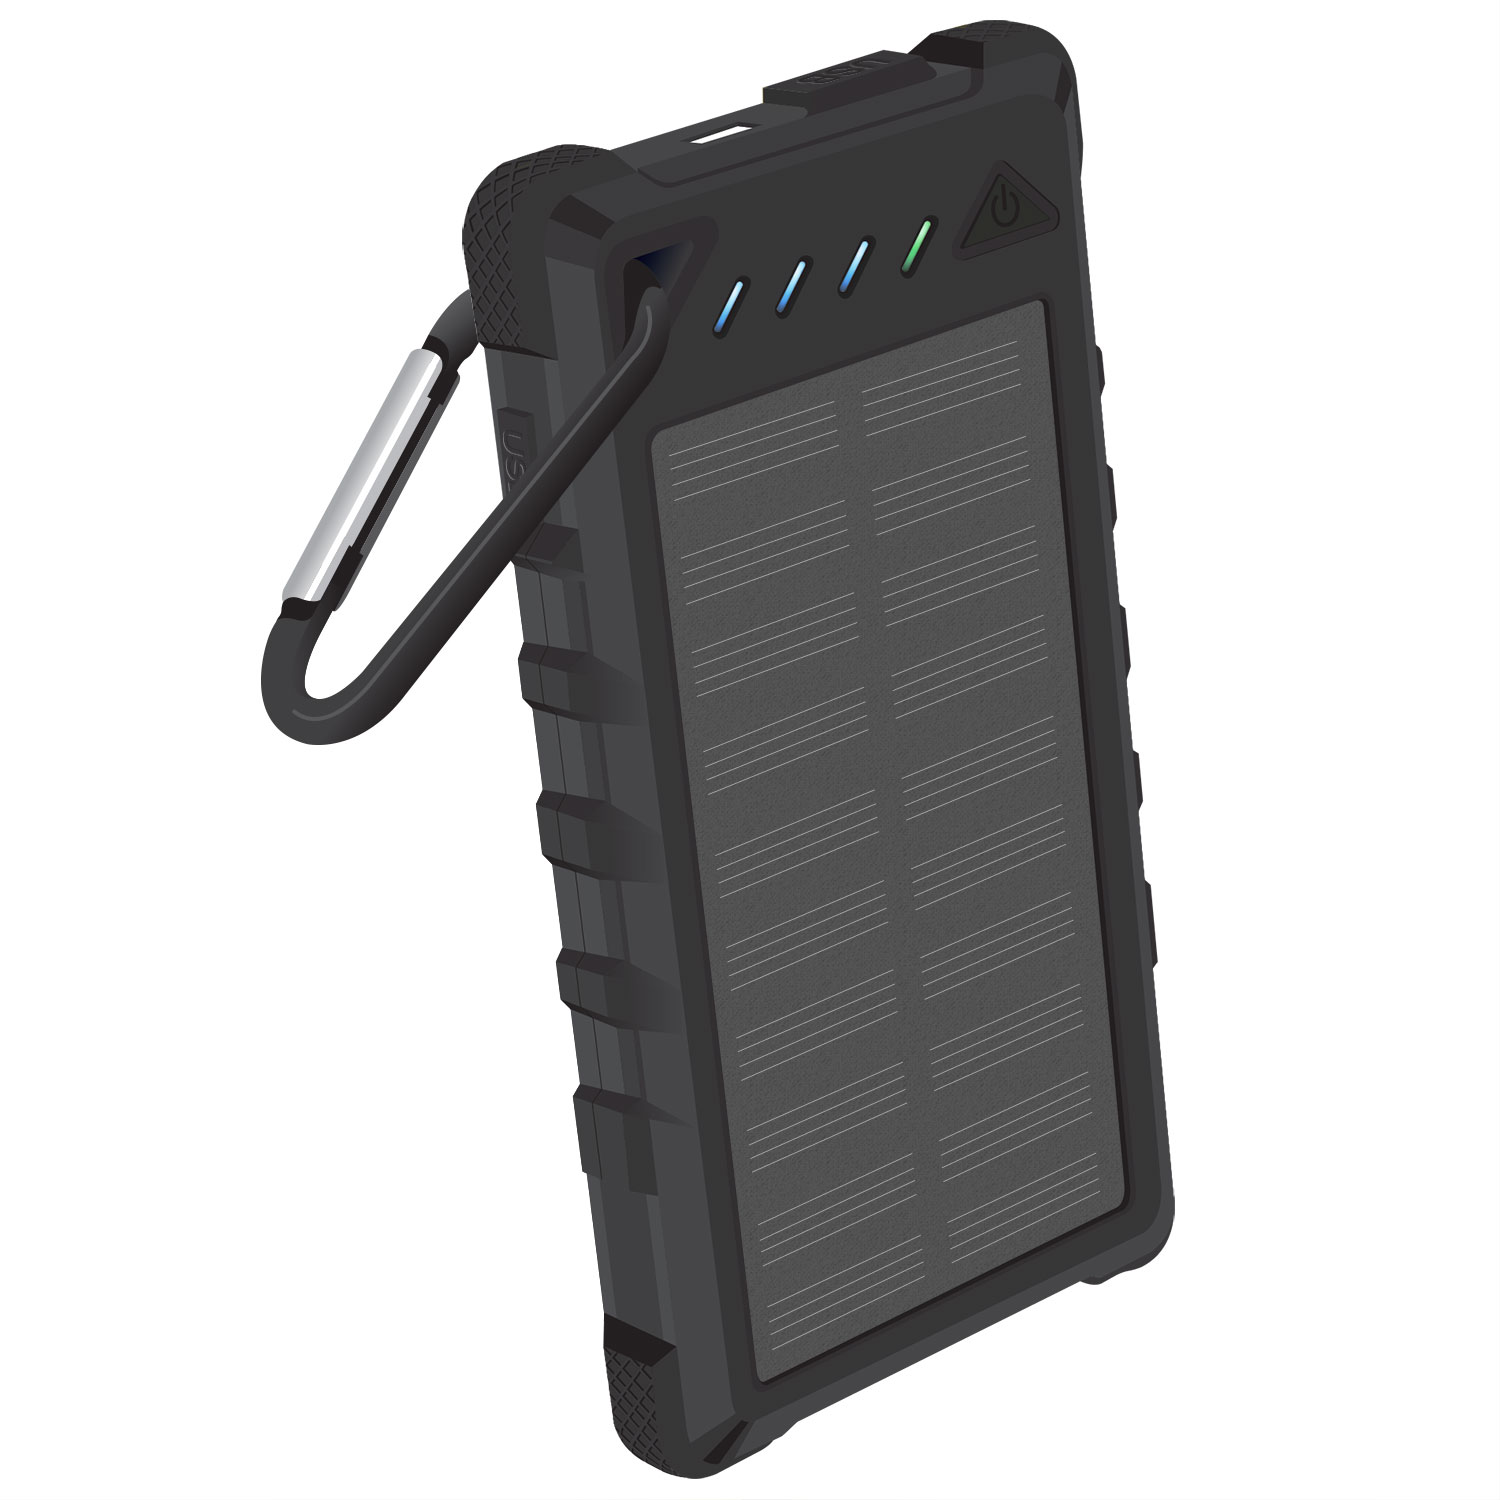 LG Marquee Solar Powered Portable PowerBank Black